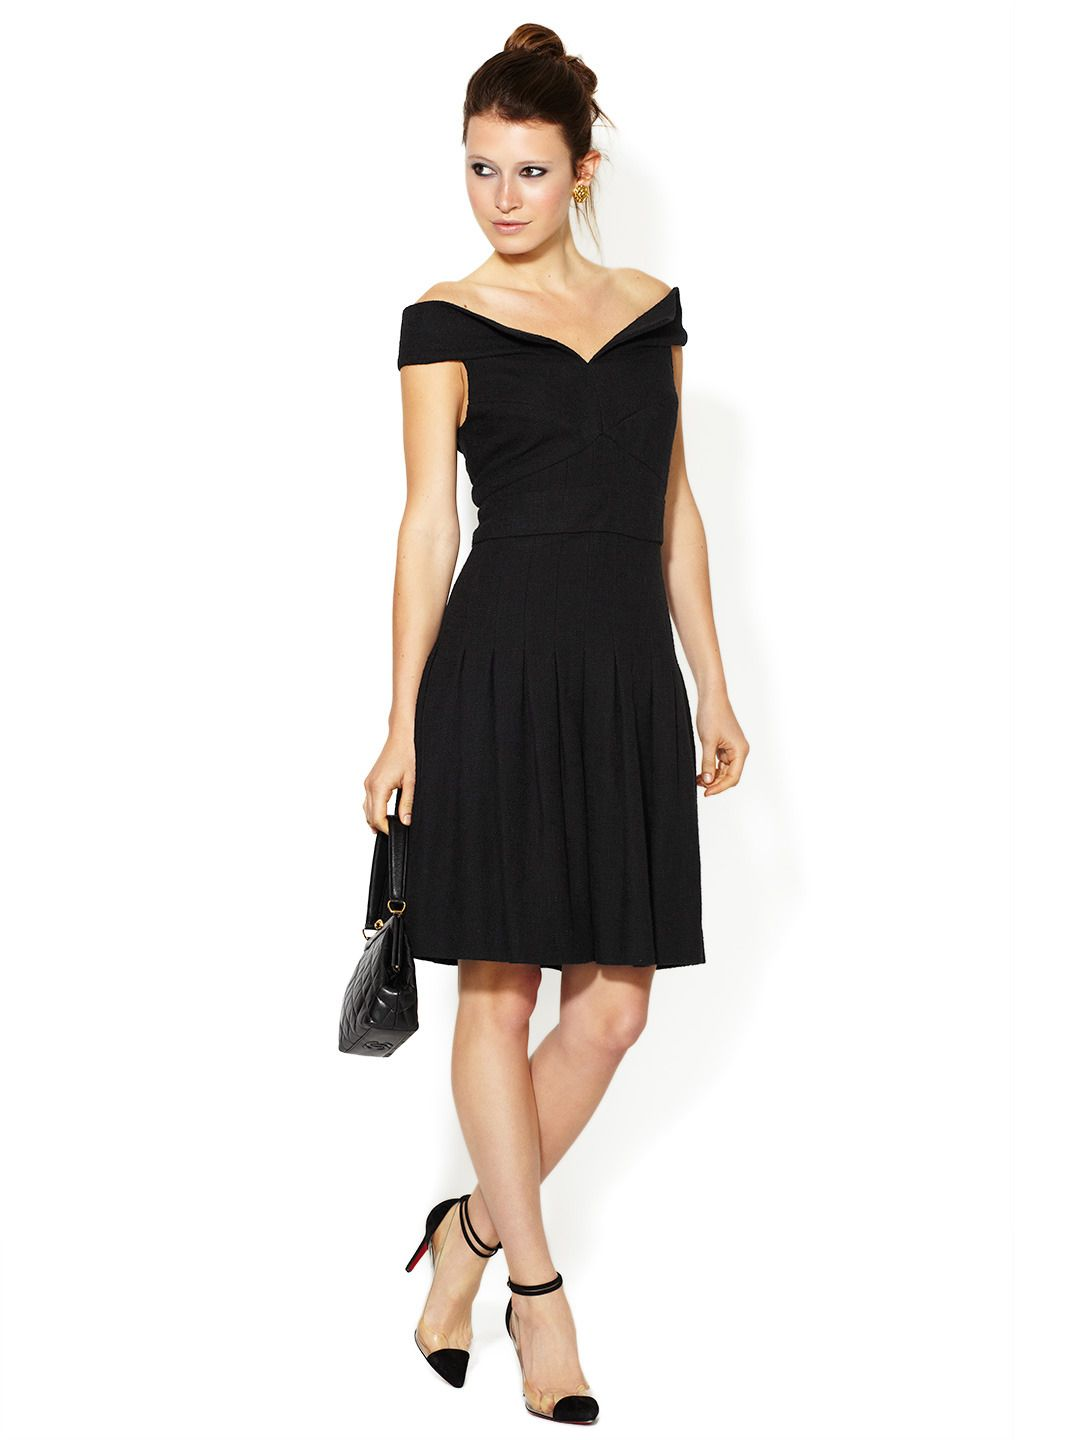 Chanel Boucle Off-Shoulder Dress by Chanel at Gilt